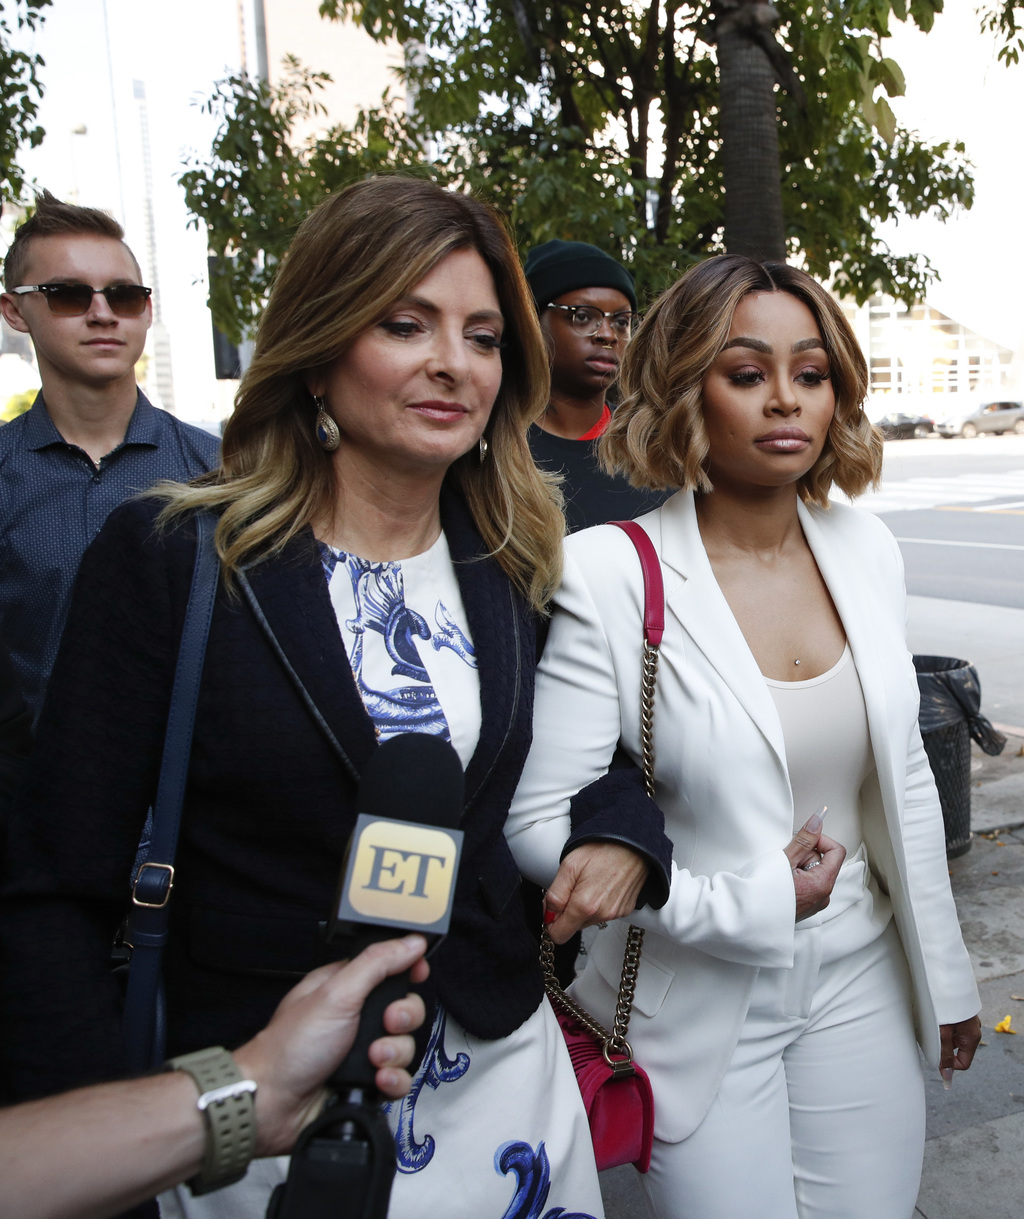 Blac Chyna and her attorney Lisa Bloom left arrive for a hearing seeking a restraining order against her former fiancee Rob Kardashian on Monday Ju